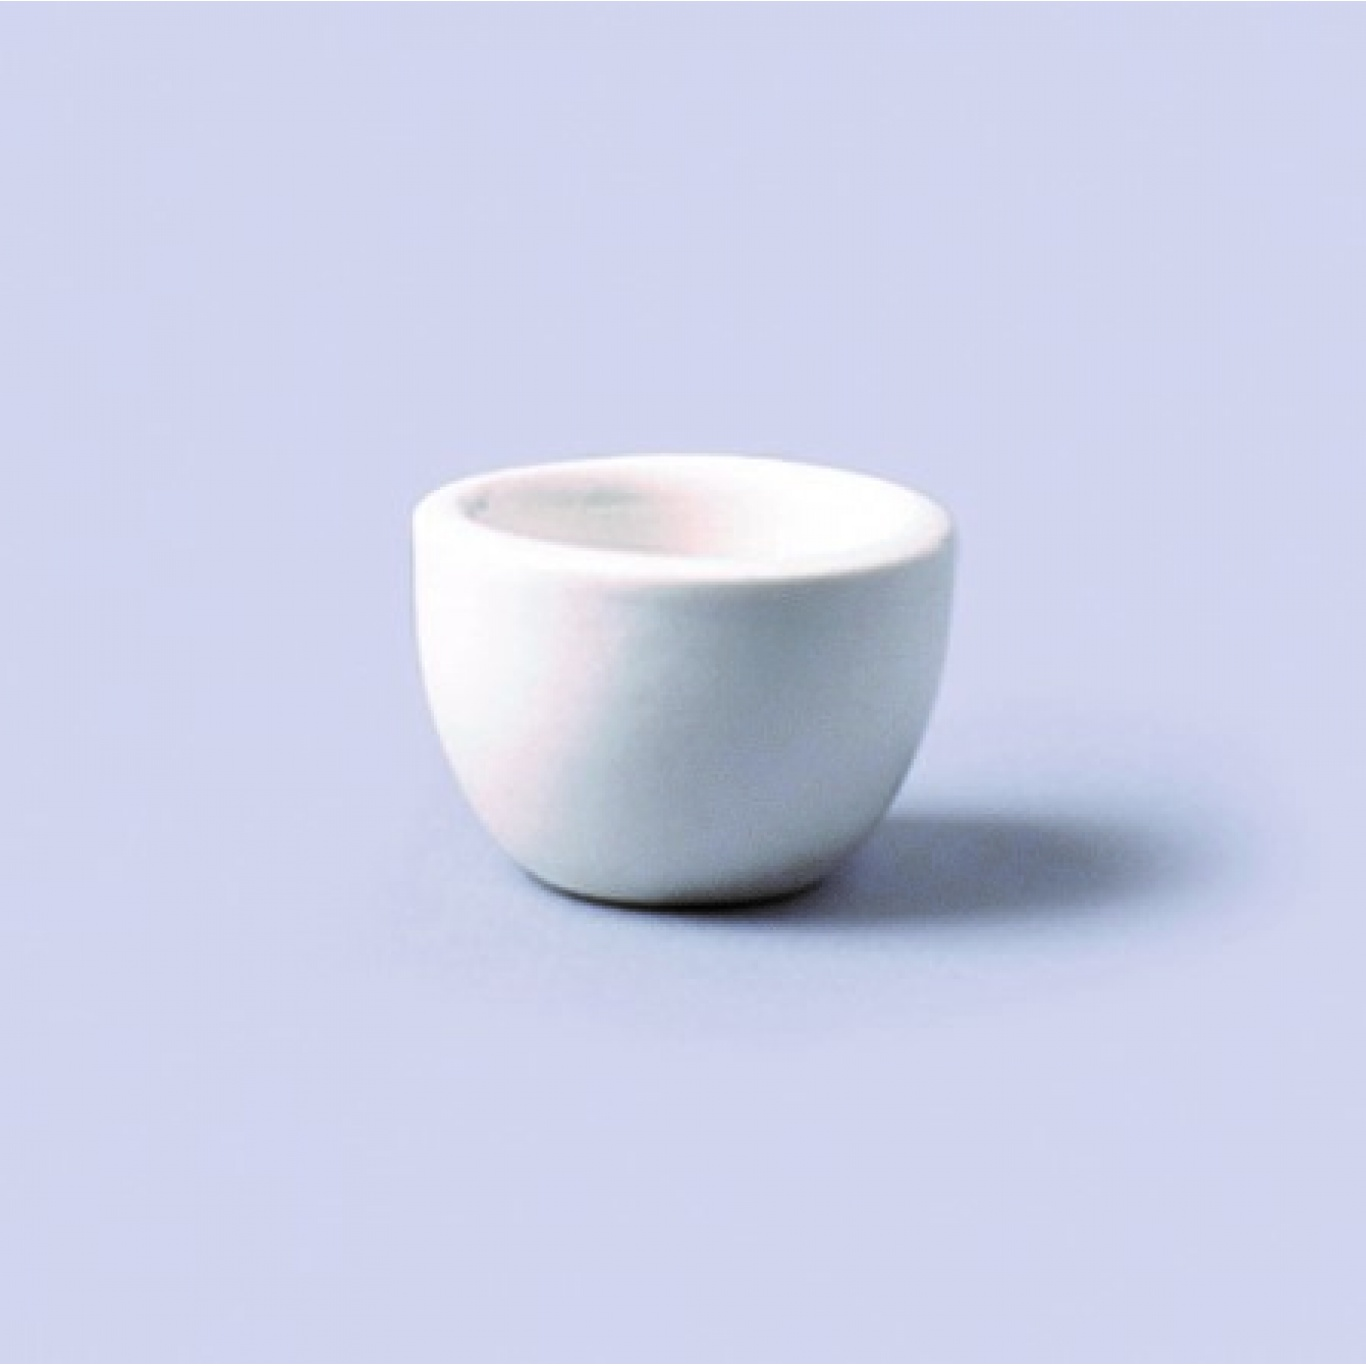 Image of Butter Pat/Small Salt Bowl/Quail Egg Cup